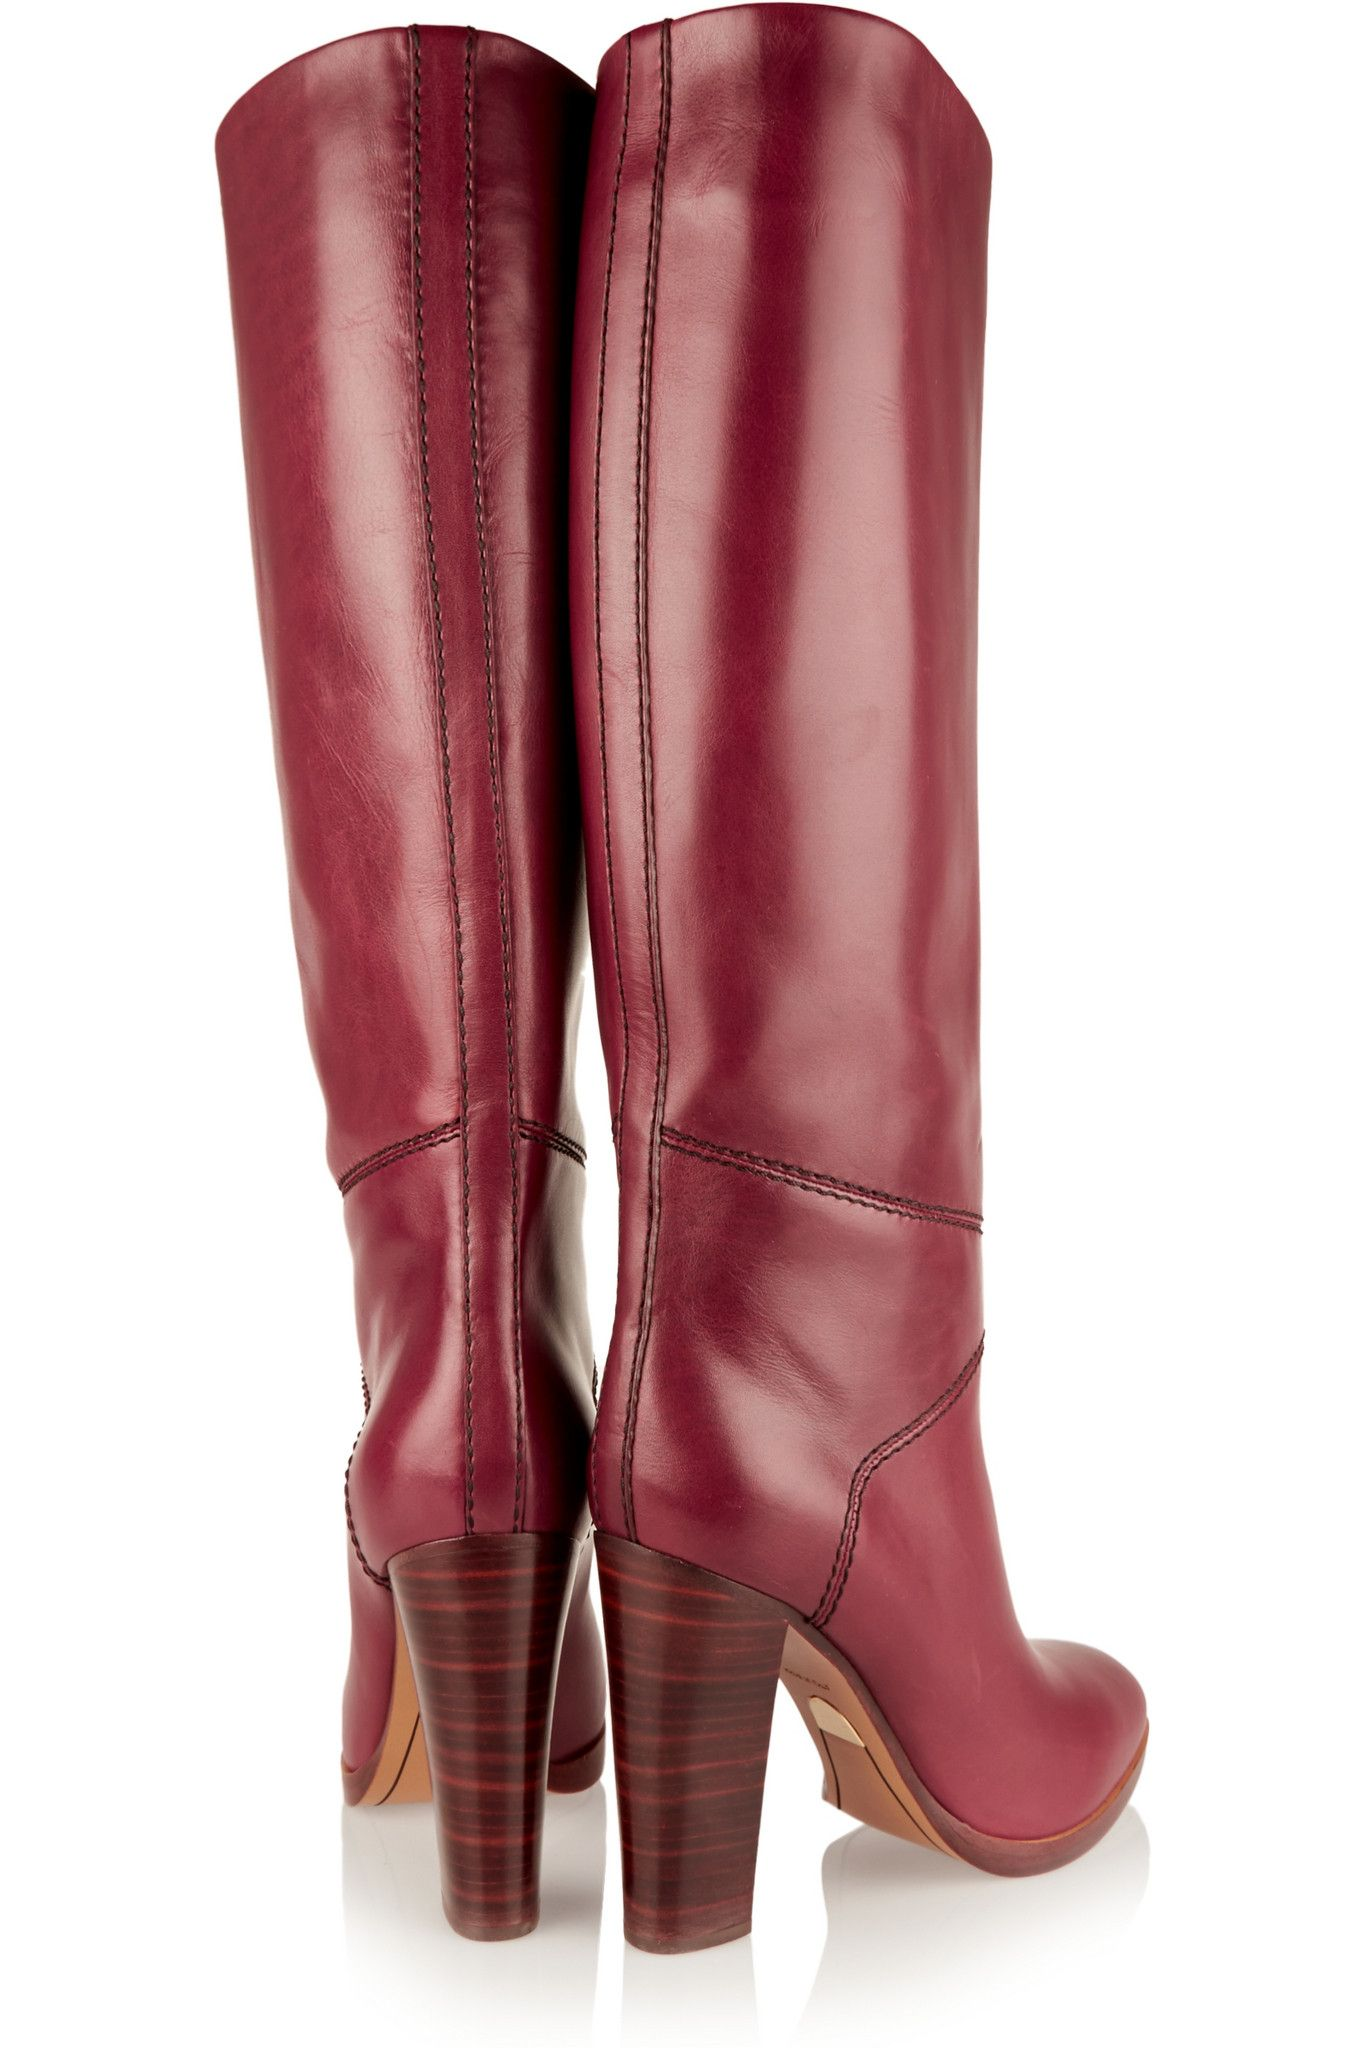 chloe-burgundy-leather-knee-boots-purple-product-0-